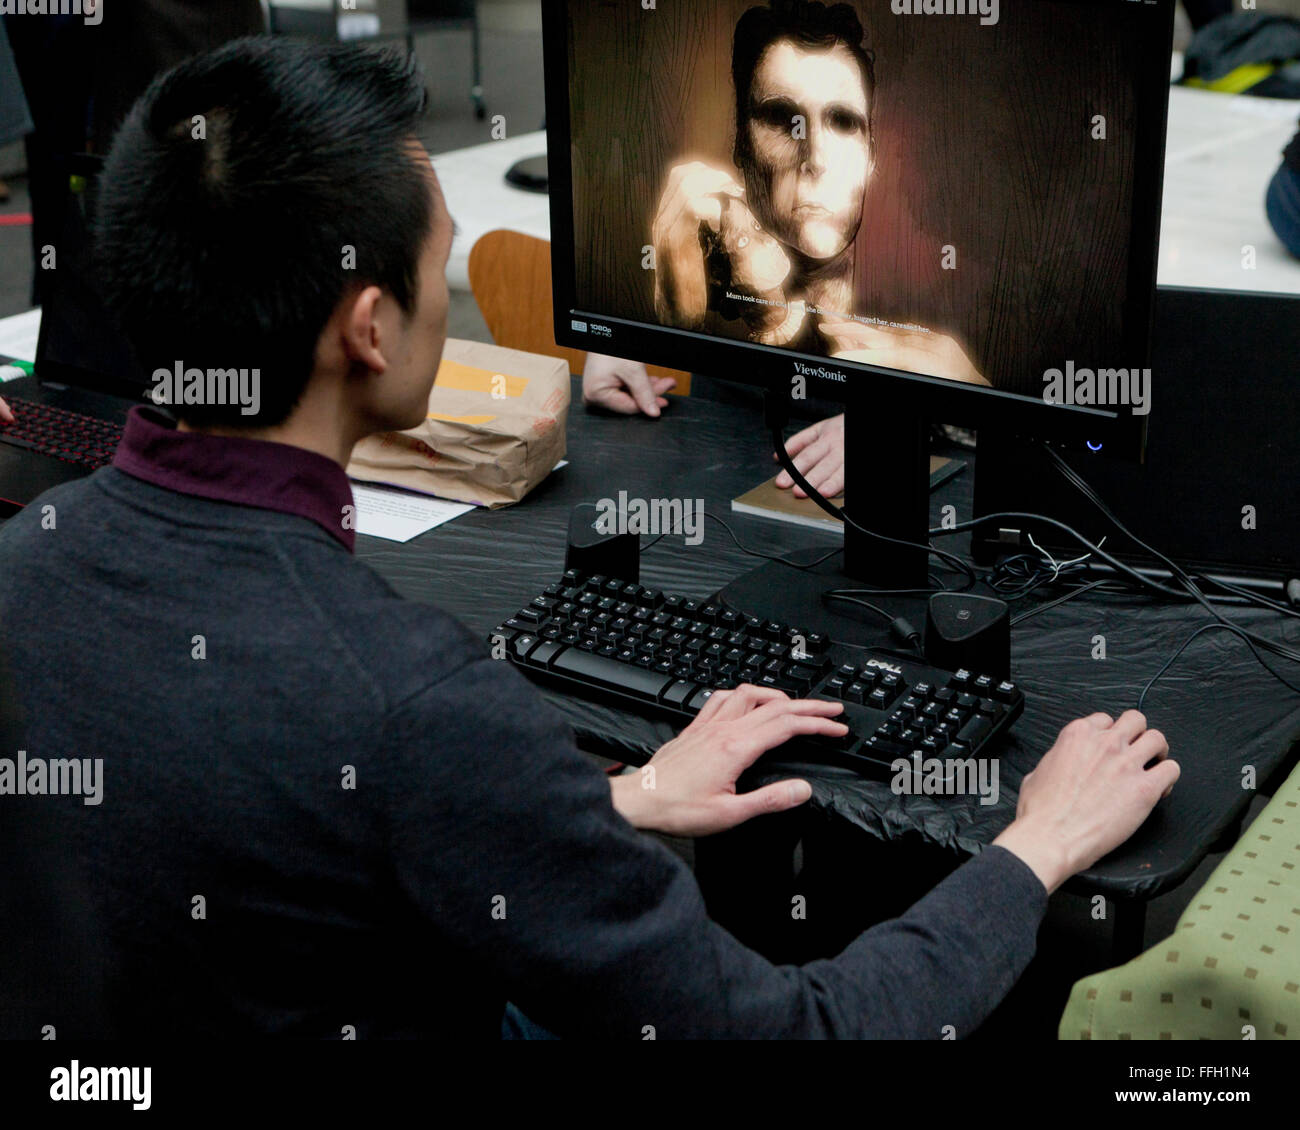 Asian man sitting in front of computer monitor - USA - Stock Image